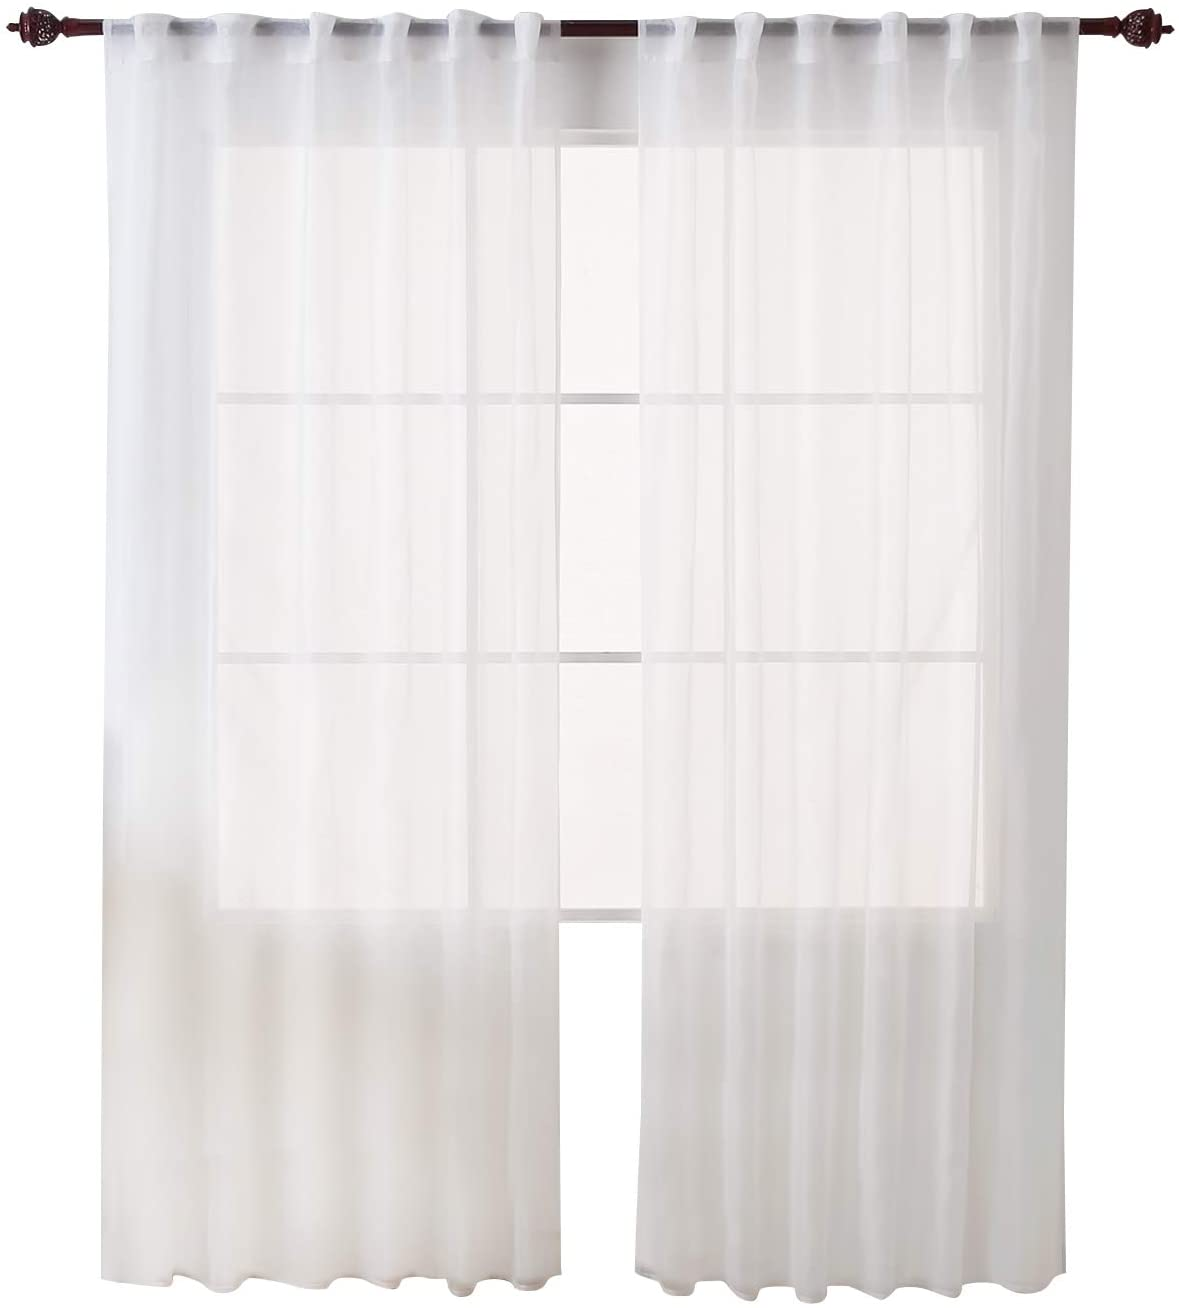 Deconovo White Sheer Curtains 84 Inch Length - Back Tab and Rod Pocket Voile Drape Curtains for Bedroom 2 Panels 52W x 84L Inch